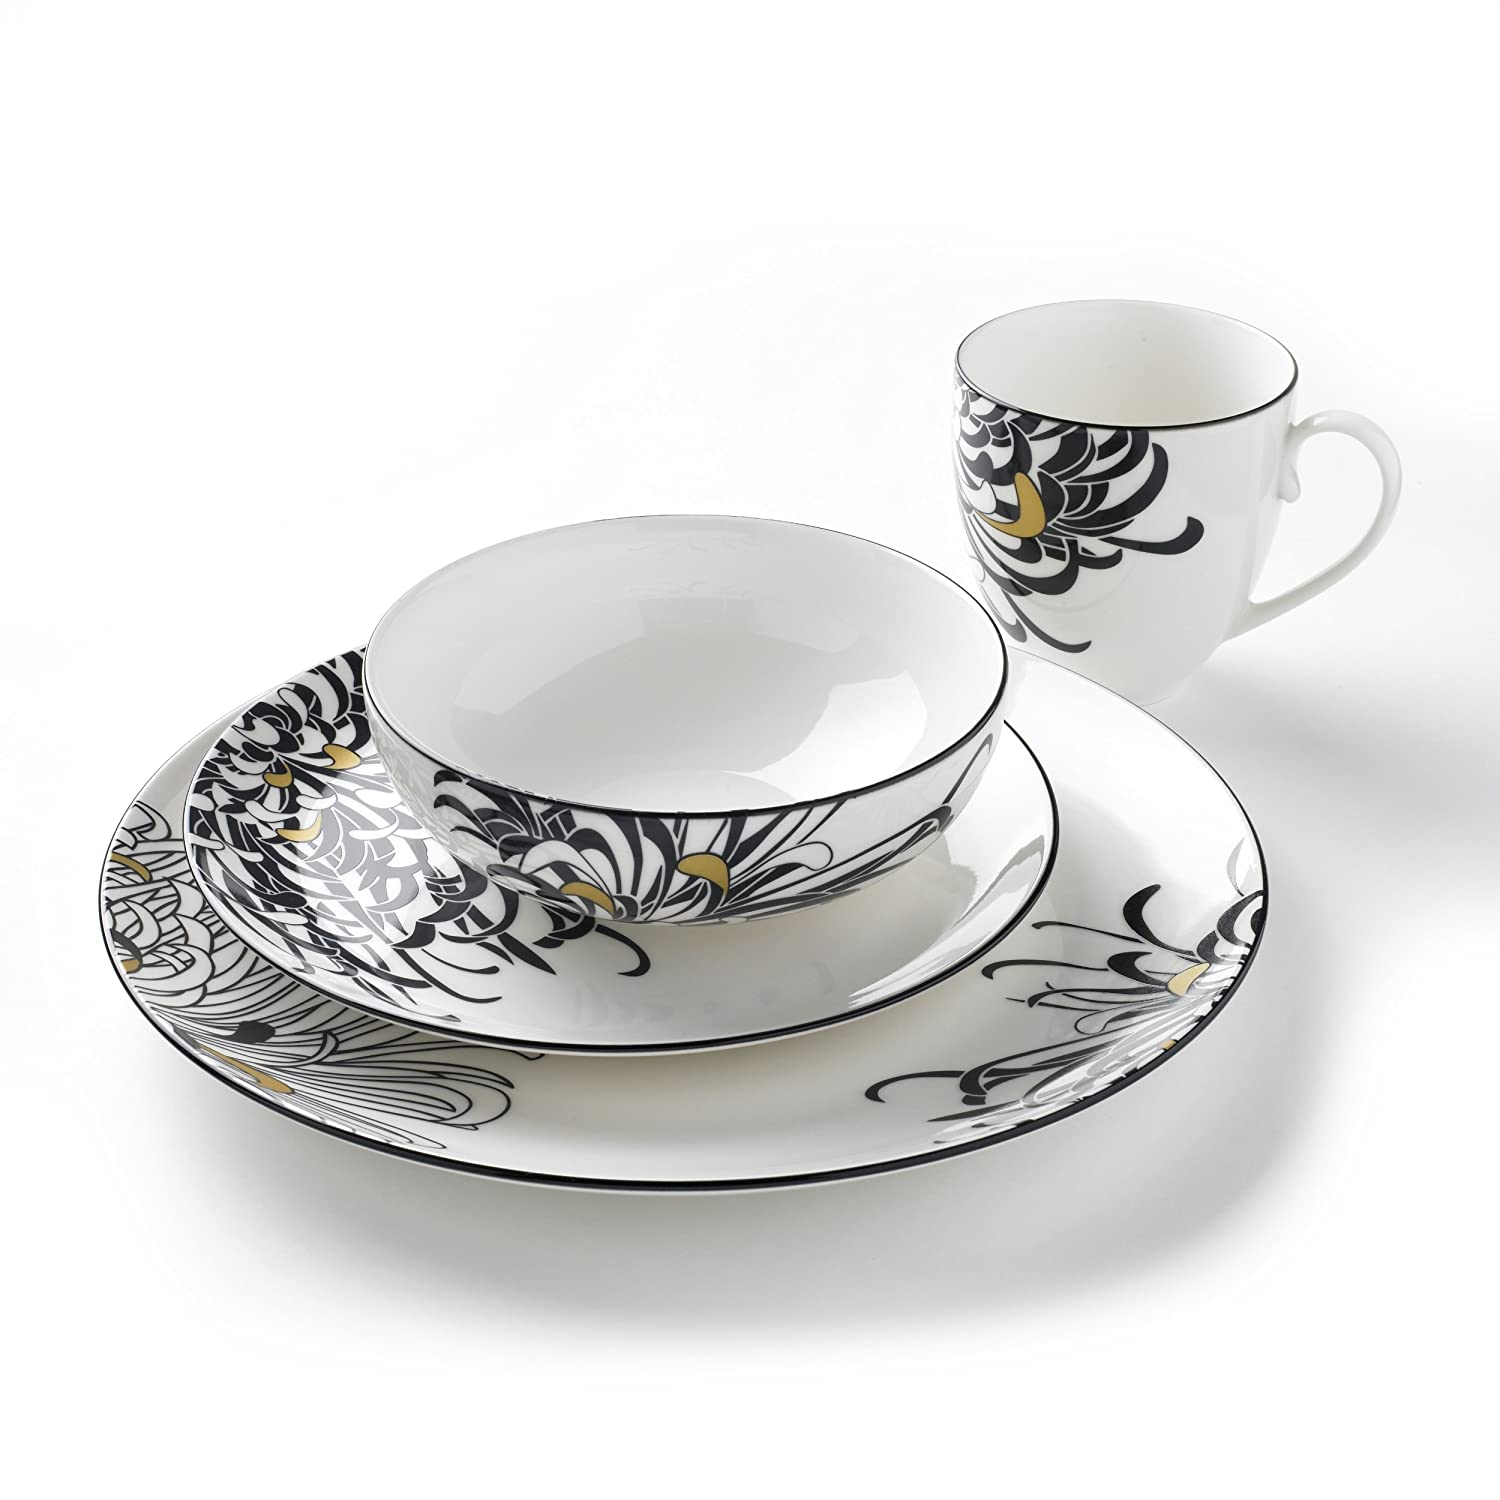 Denby Monsoon Chrysanthemum Dinnerware Boxed Set 16-Piece Amazon.co.uk Kitchen u0026 Home  sc 1 st  Amazon UK & Denby Monsoon Chrysanthemum Dinnerware Boxed Set 16-Piece: Amazon ...